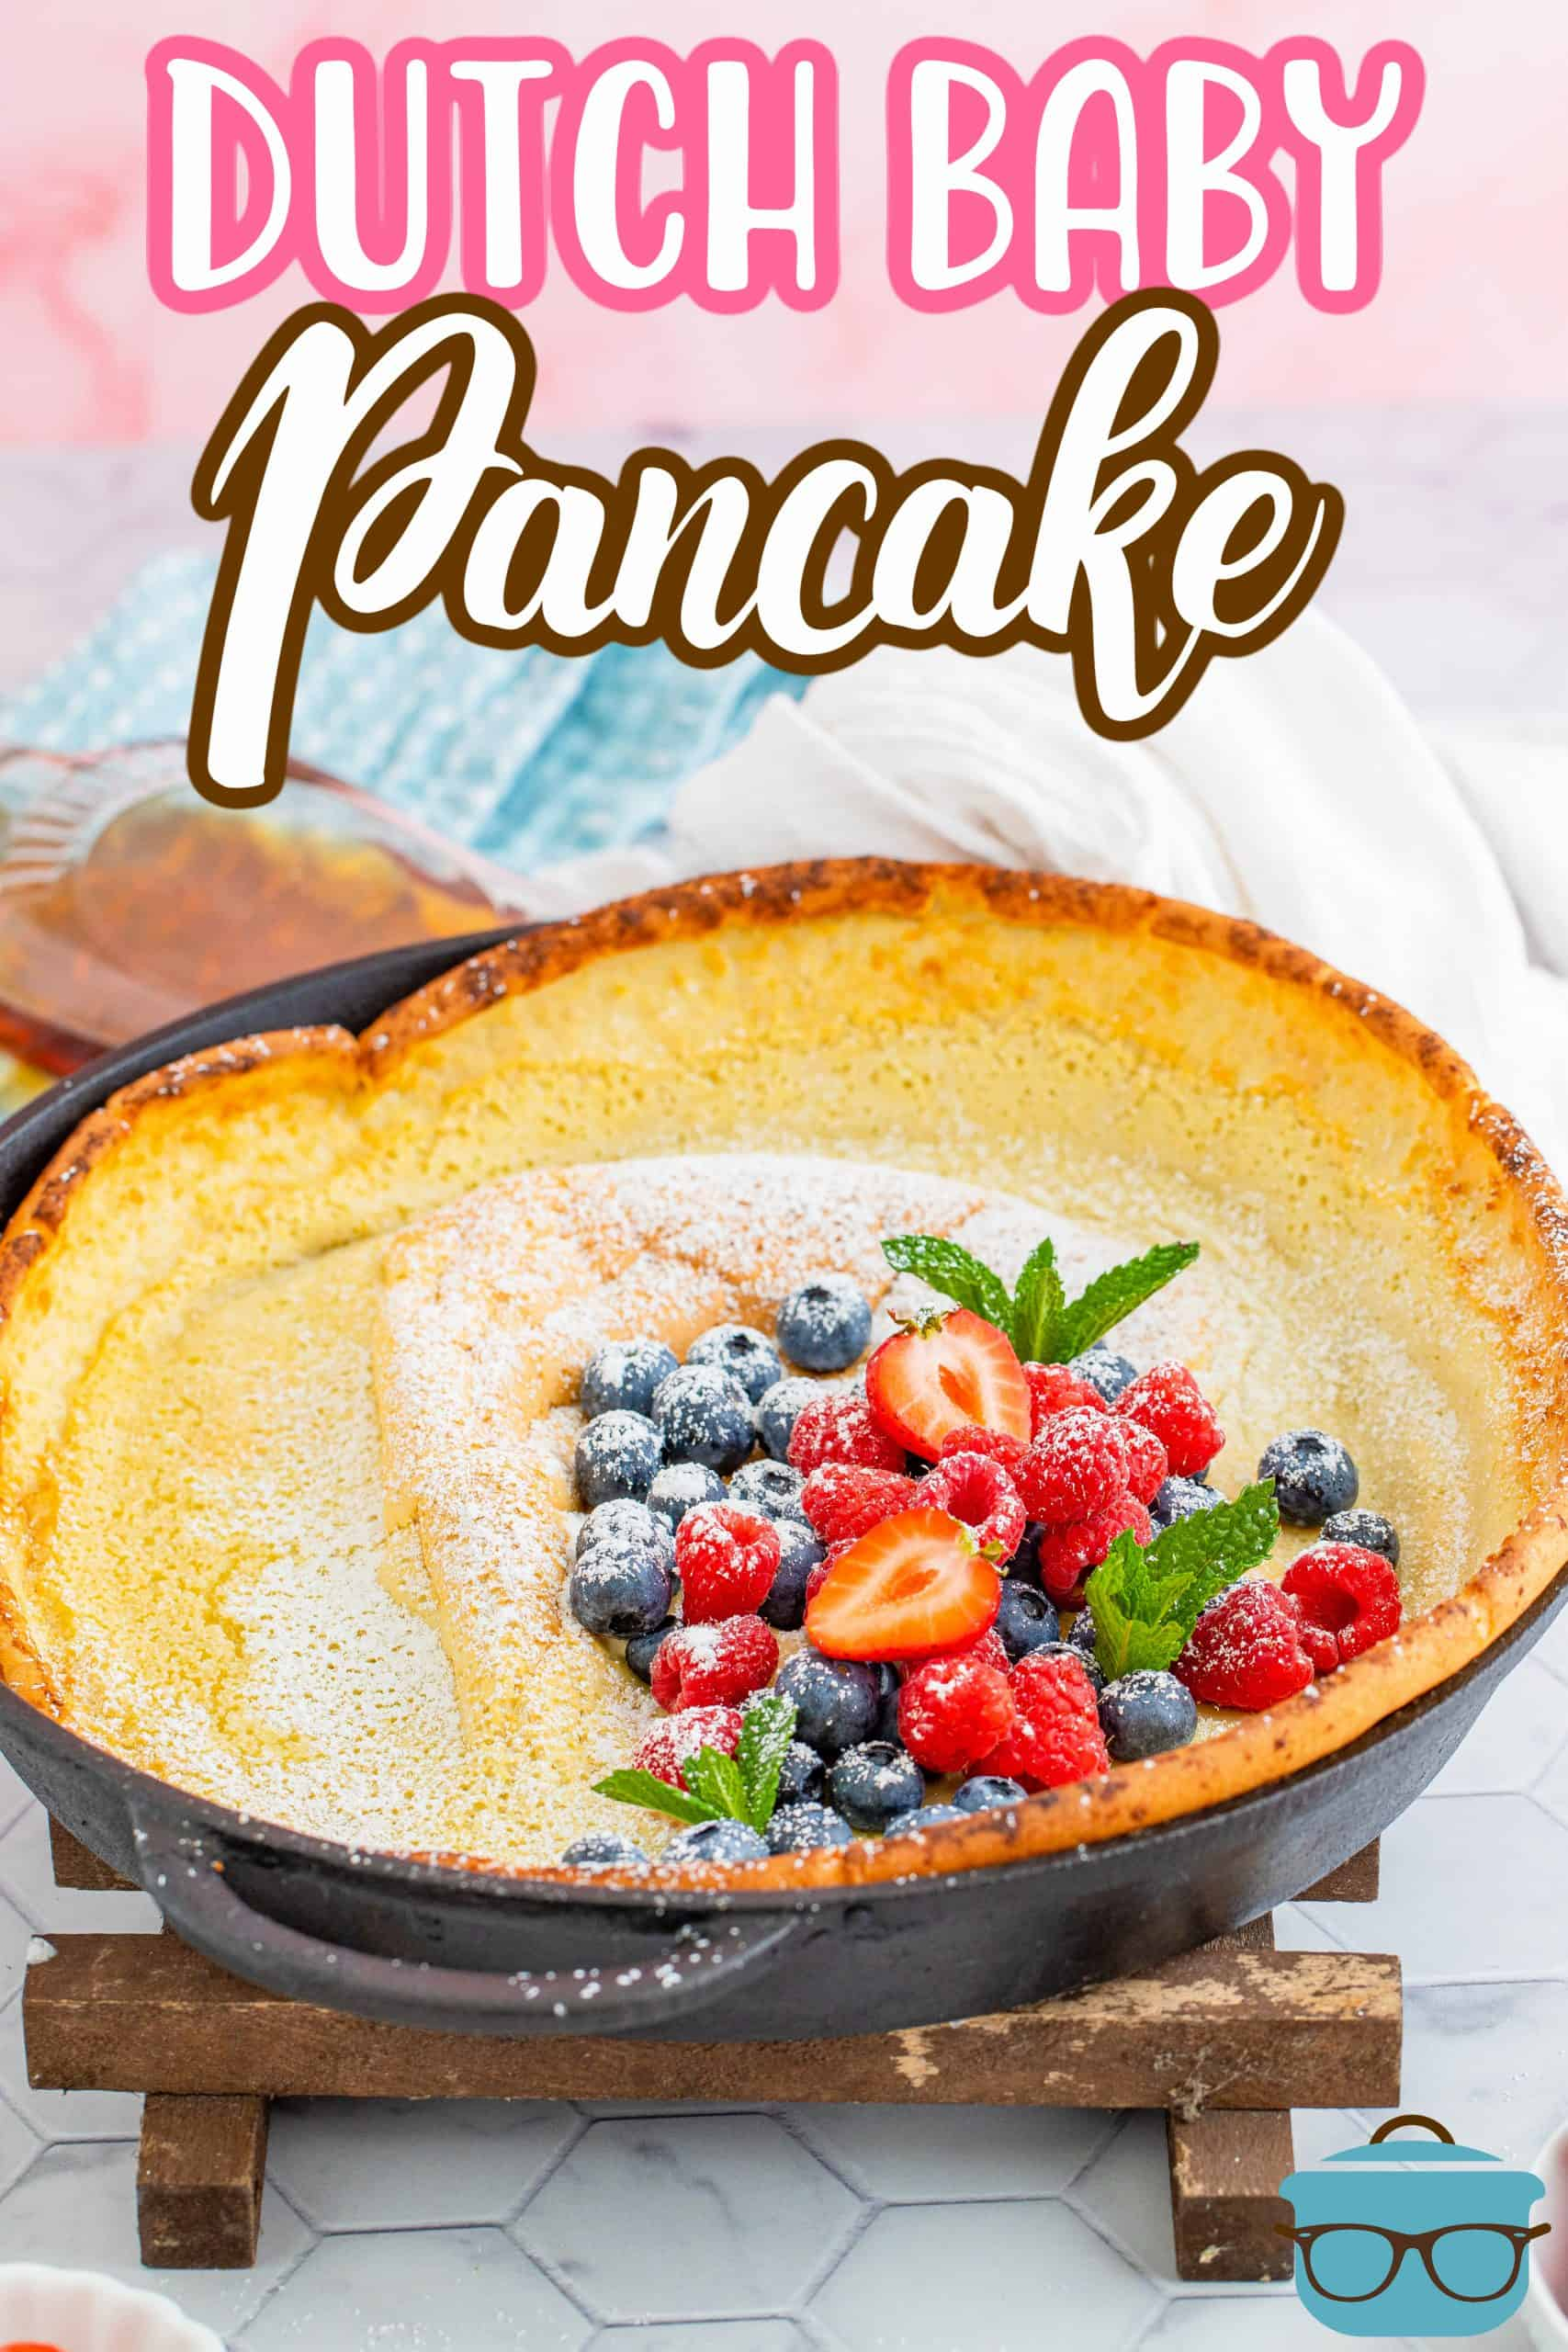 Want to switch up your usual pancake routine? Then you need to make this easy, minimal ingredient Dutch Baby Pancake. Simple, fun and absolutely flavorful.